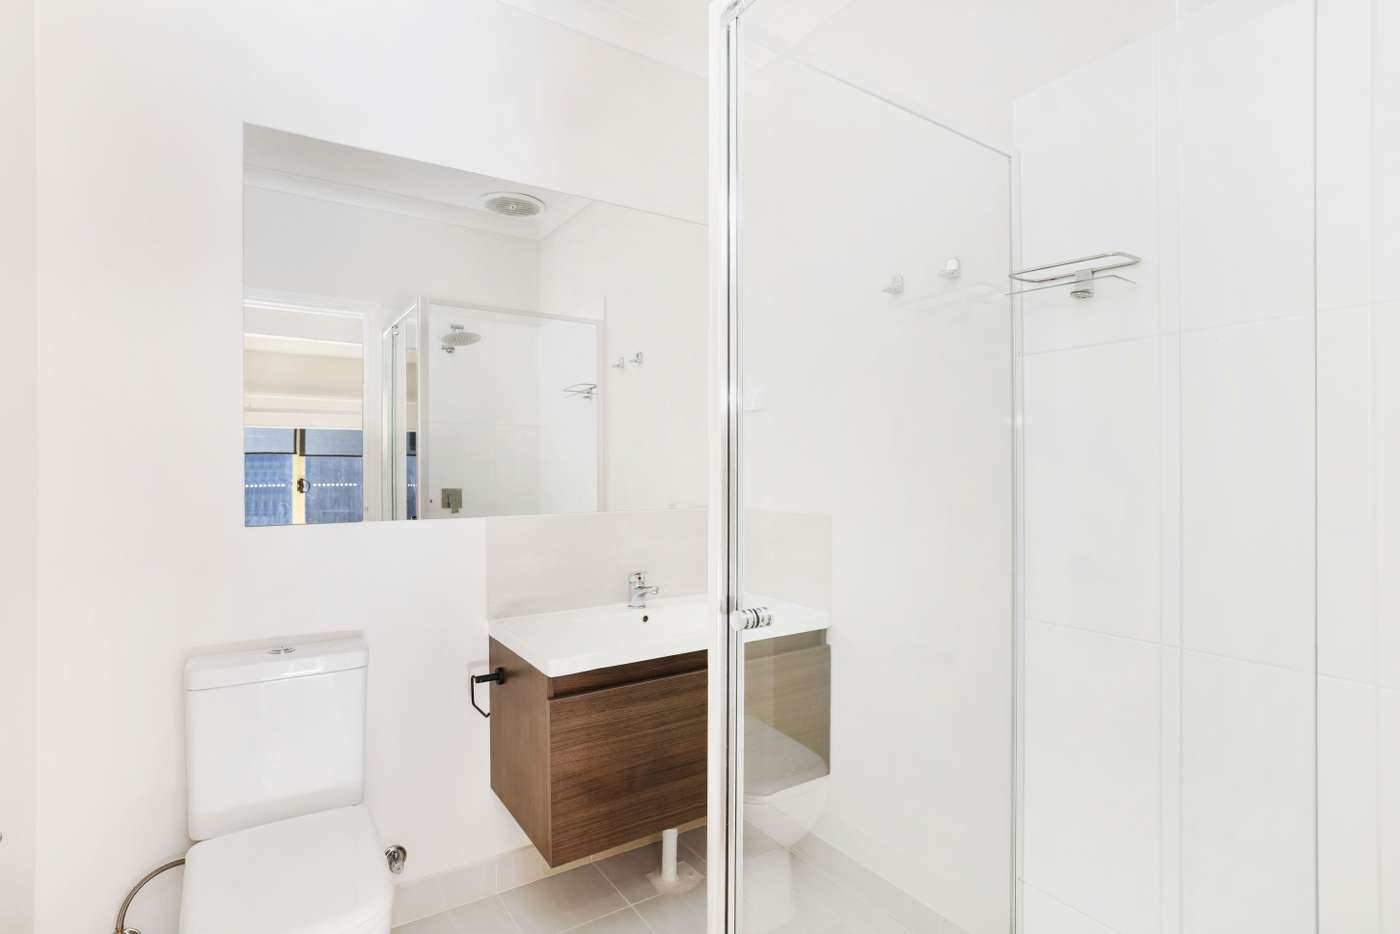 Seventh view of Homely unit listing, 3/85 Hubert Avenue, Glenroy VIC 3046